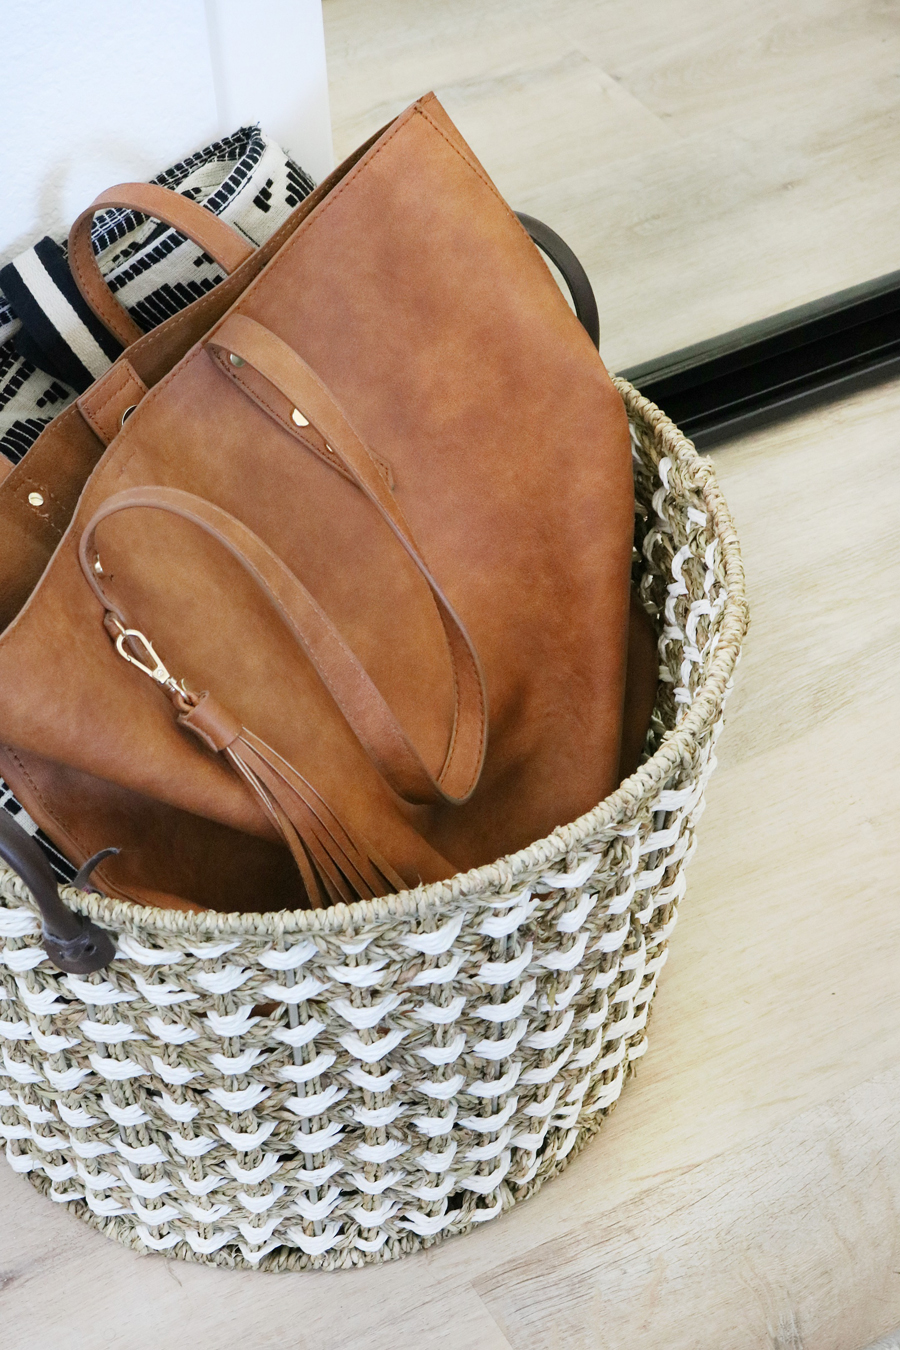 Easy Organization Idea - Use large baskets for handbags, extra bed pillows, or throw blankets